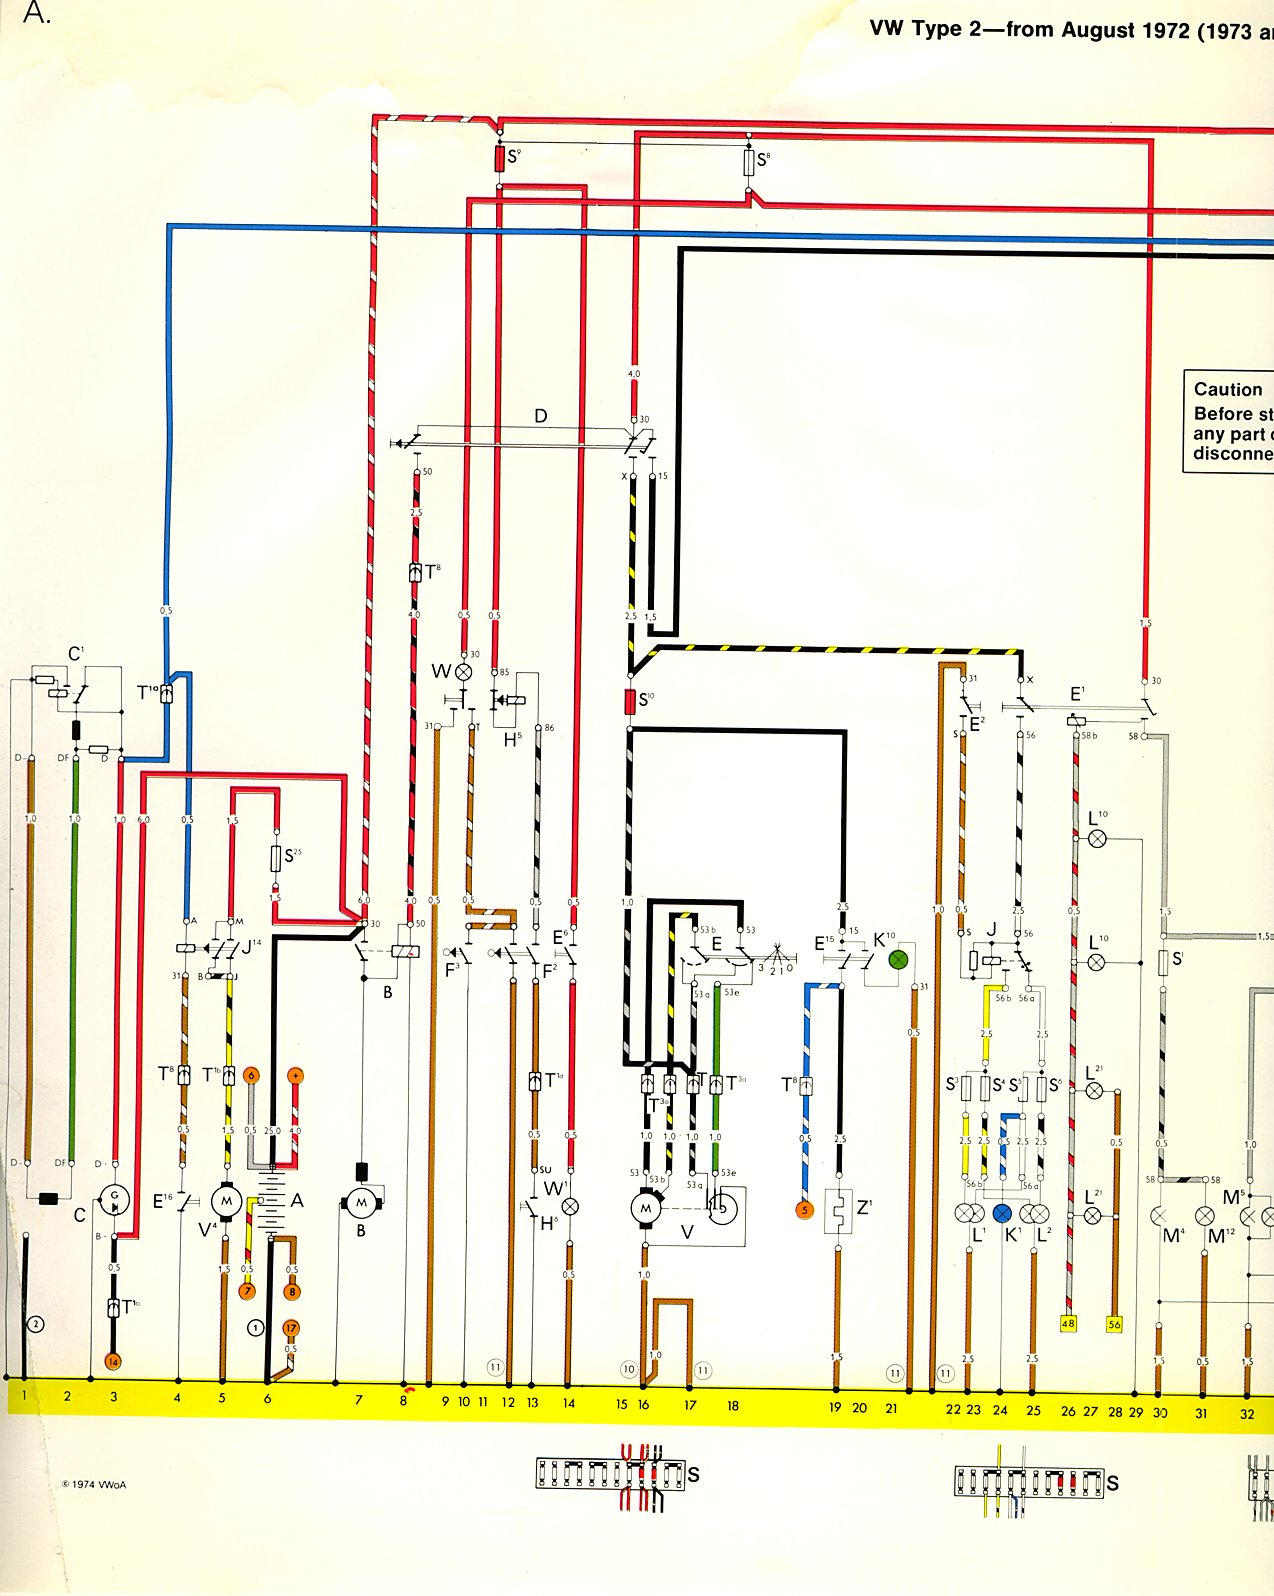 WRG-0721] Go Devil Ignition Switch Wiring Diagram